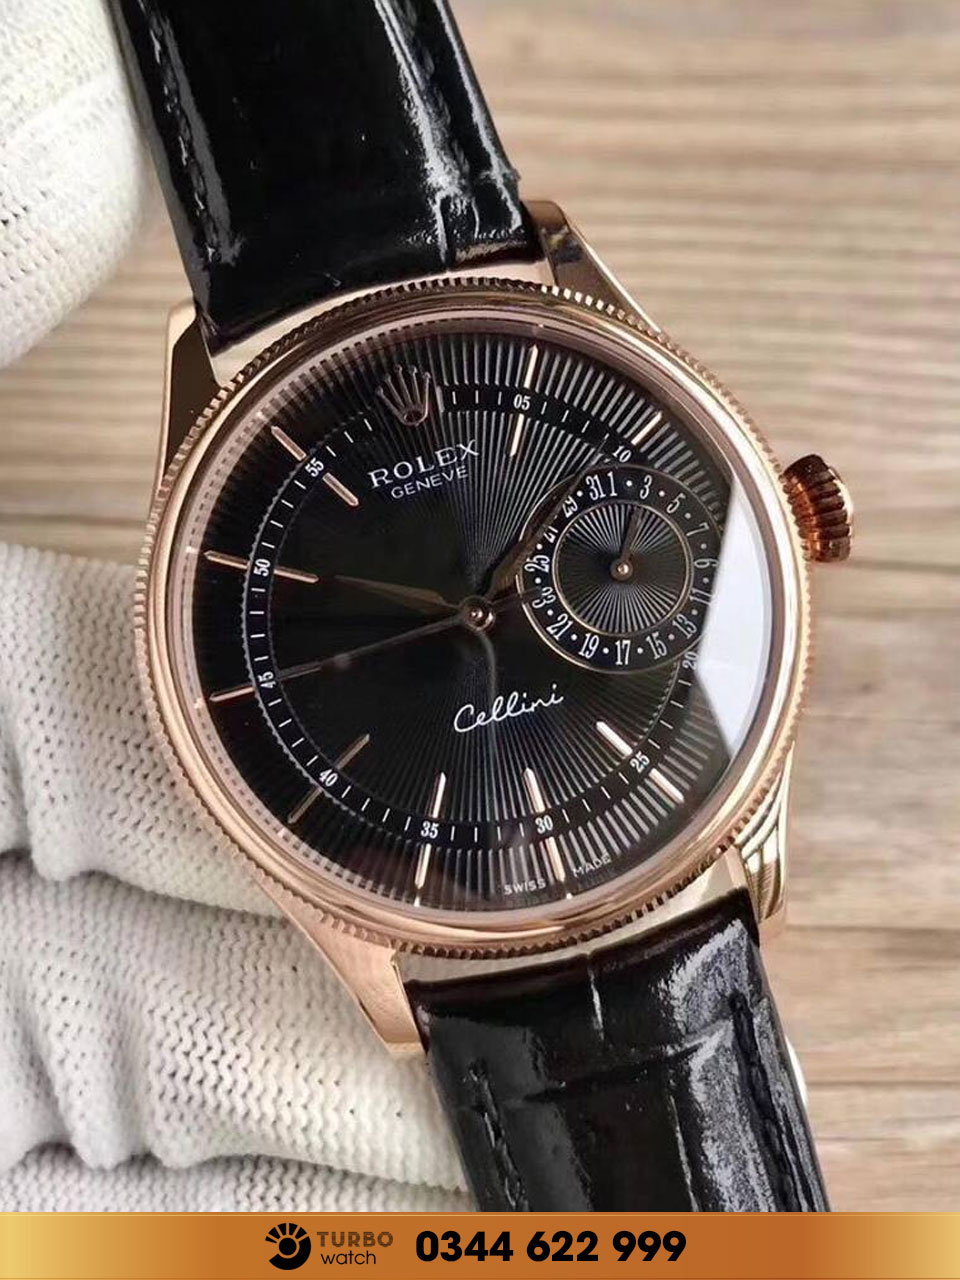 Rolex  Cellini Date 39mm 50515-0011 black gold fake 1-1 siêu cấp